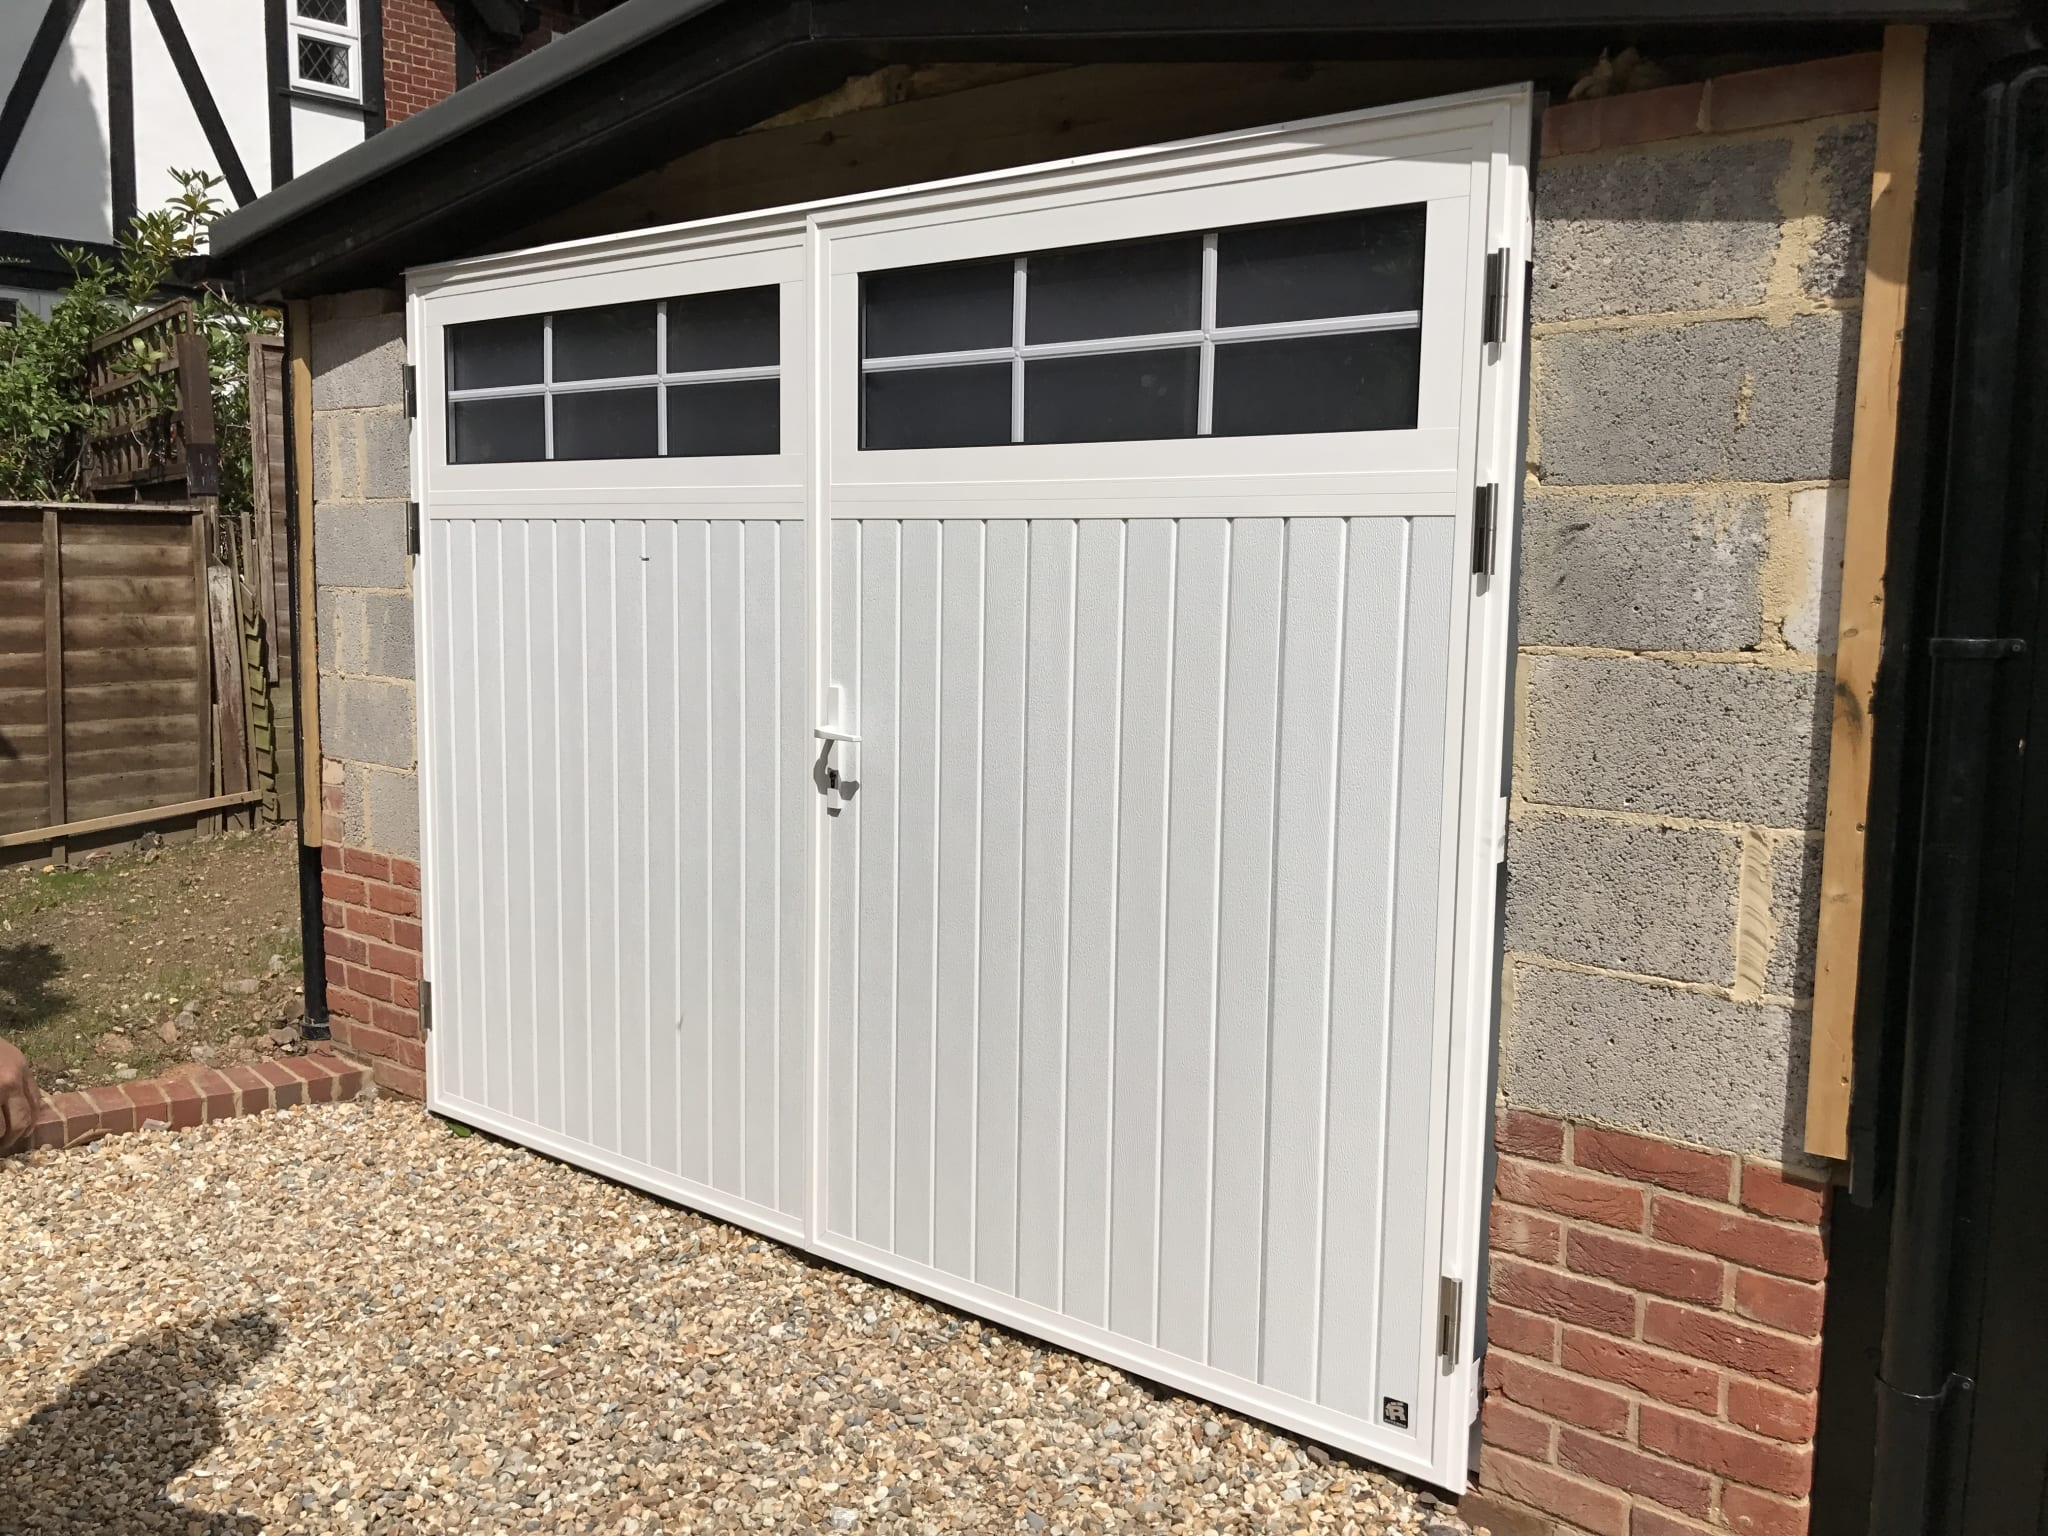 excellent windows horizontal com luciat garage prices vertical doors lever side handle chertsey sliding insulated hinged traditional in woodgrain images of ryterna with white